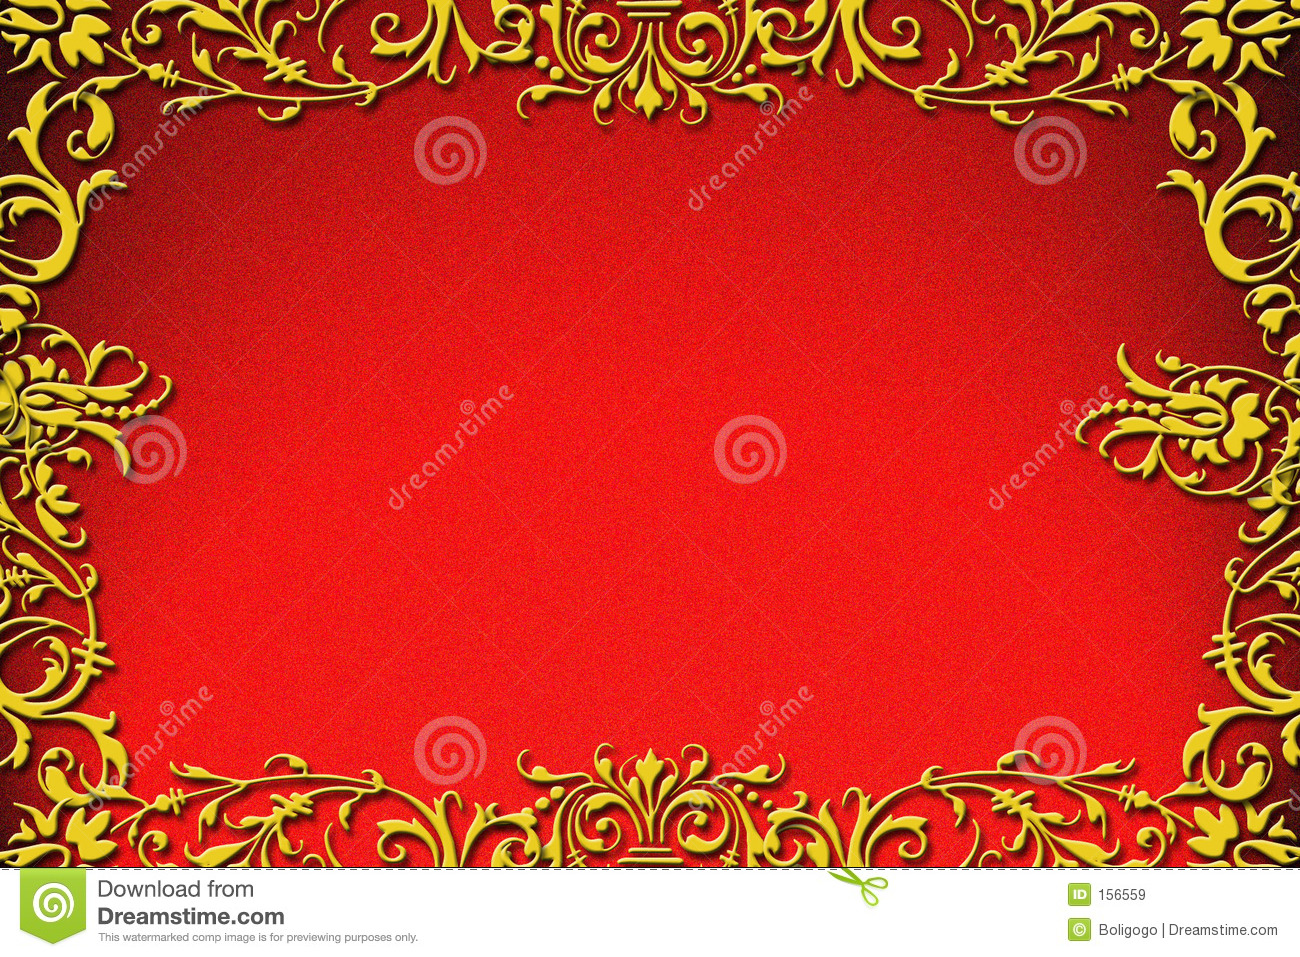 Royal Gold Royalty Free Stock Images